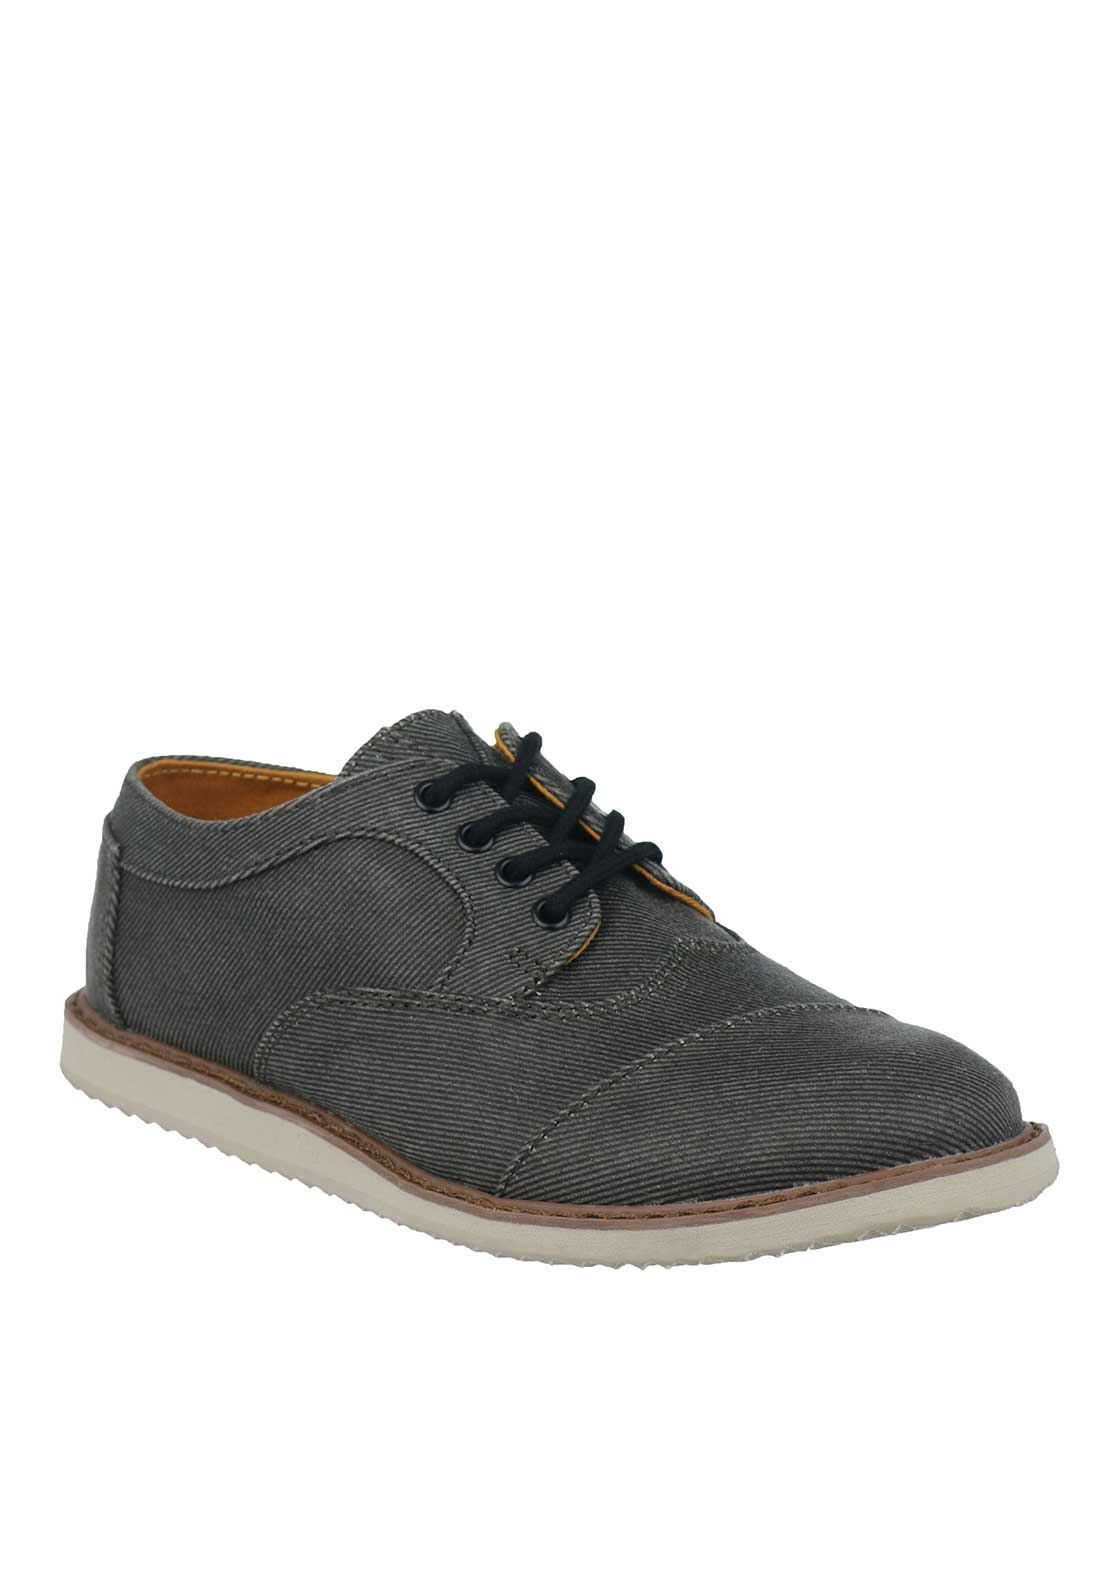 TOMS Boys Twill Brogue Shoes, Grey